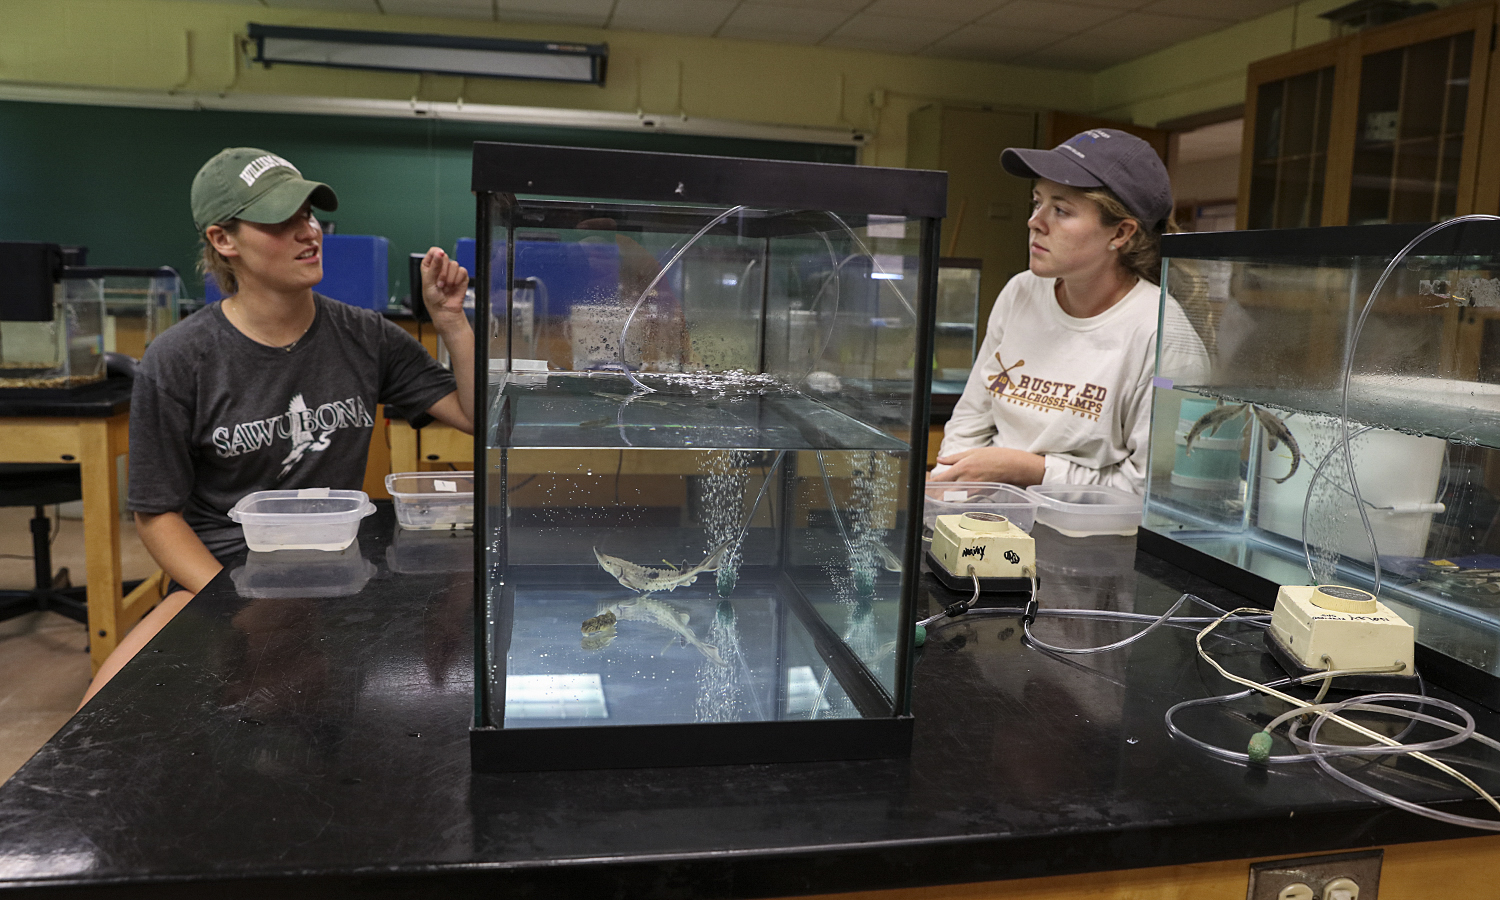 Kate Foley '20 and McKenzie Frazier '20 discuss findings on feeding trials with Round Goby and Lake Sturgeon as part of summer research conducted alongside Director of Introductory Biology Laboratories Susan Flanders Cushman '98.